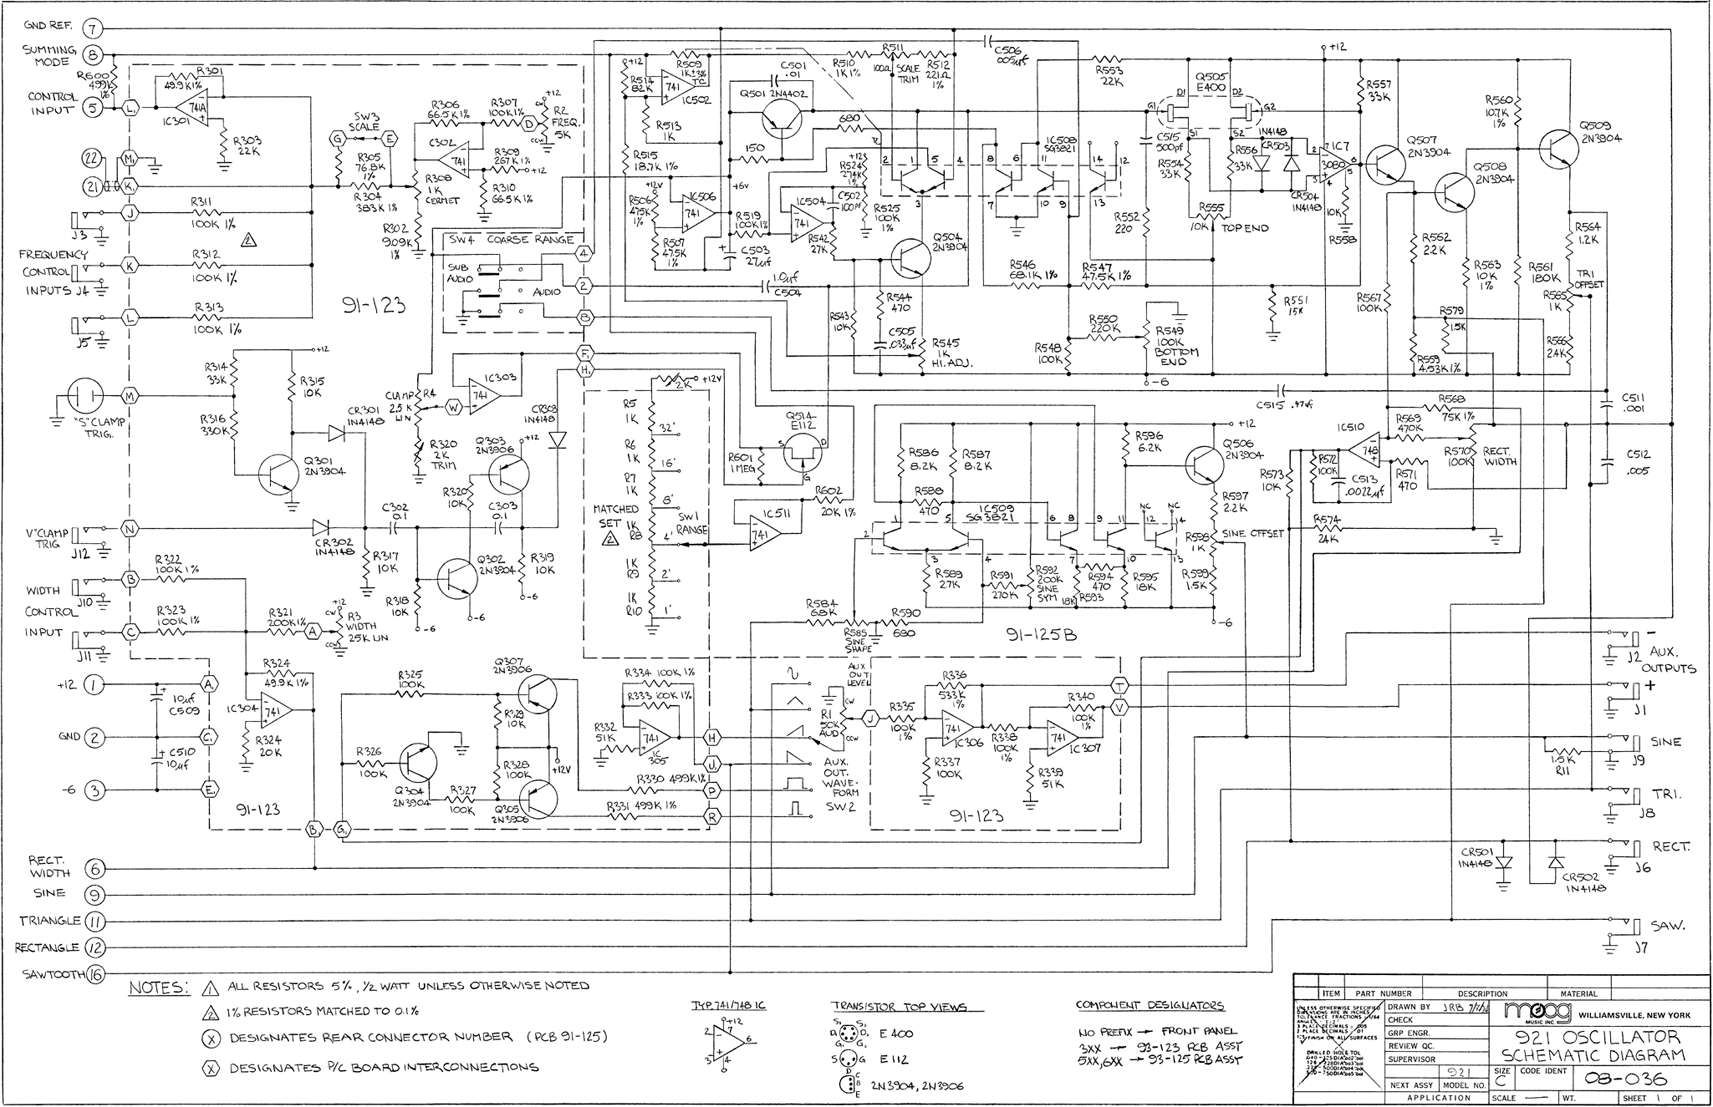 Synthesizer Schematics, User and Service Manuals.